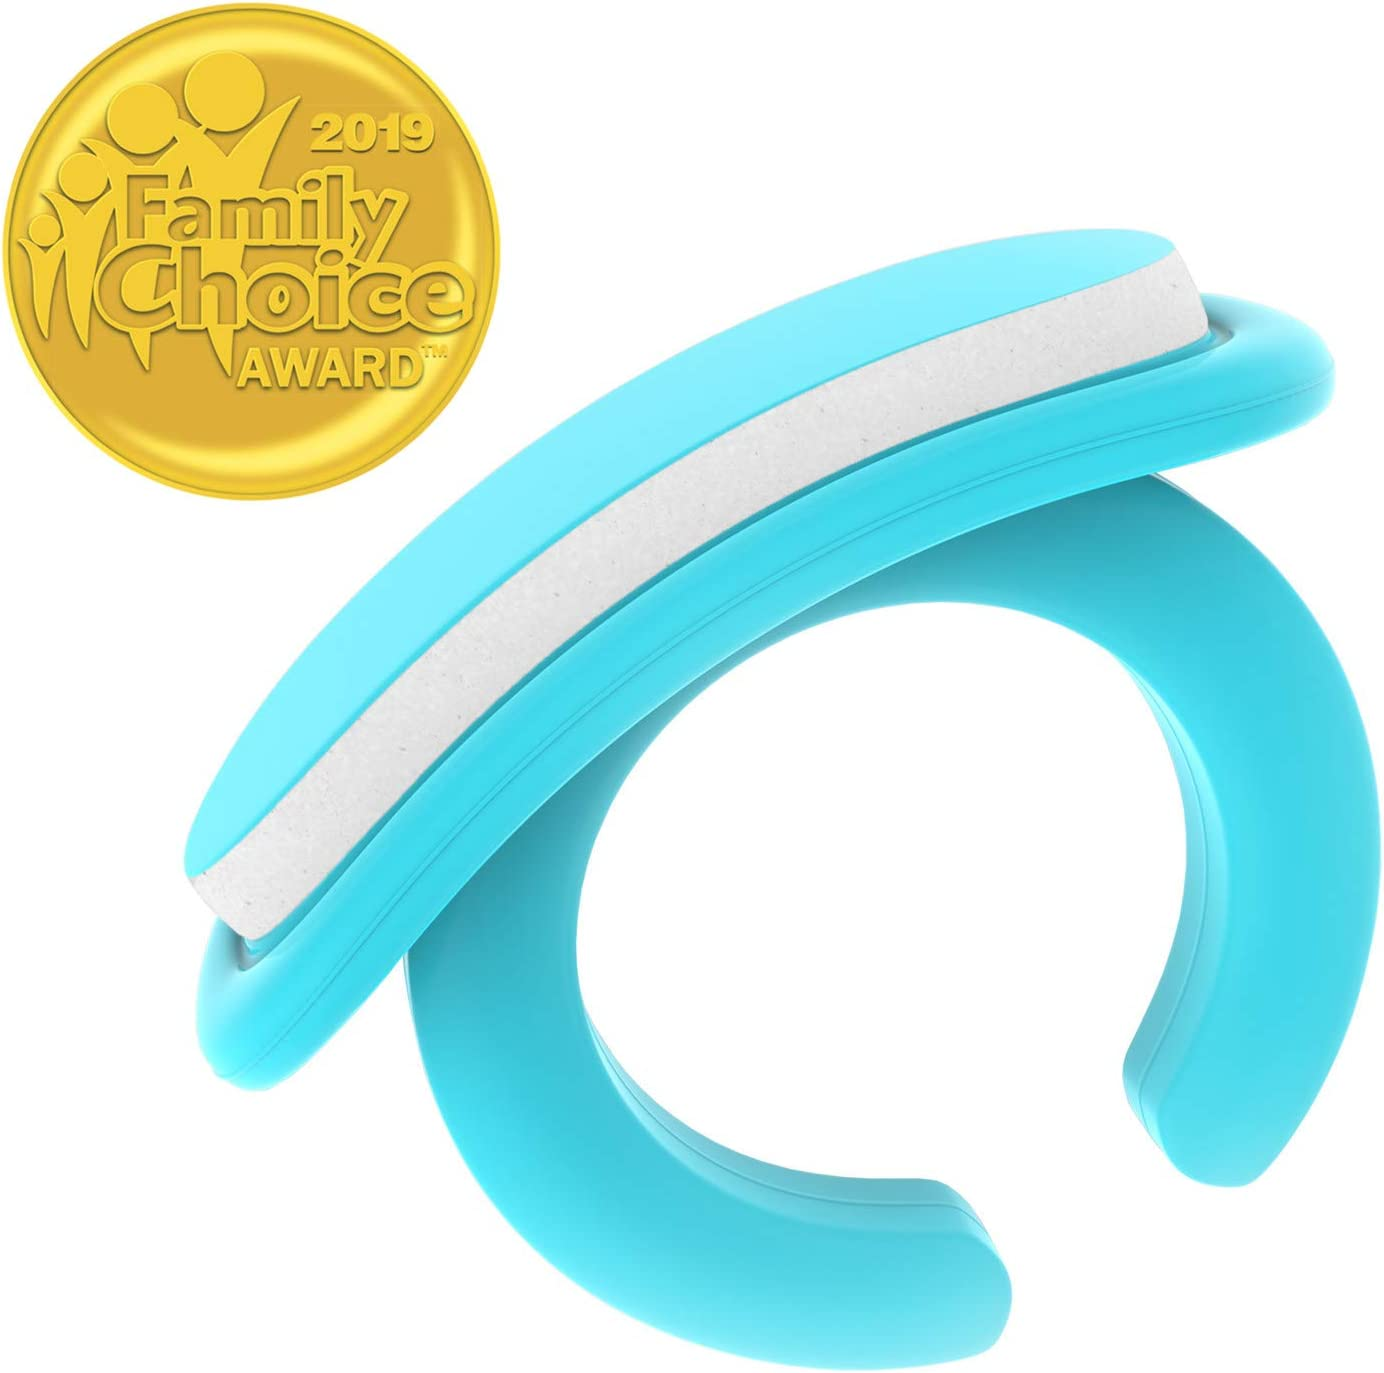 Wearable Baby Nail File with a Ring for Your Finger I Very Useful Baby Nail Care Set for Newborns I 18 Snap-Off Disposable Files/Baby Nail File (0 Months+)